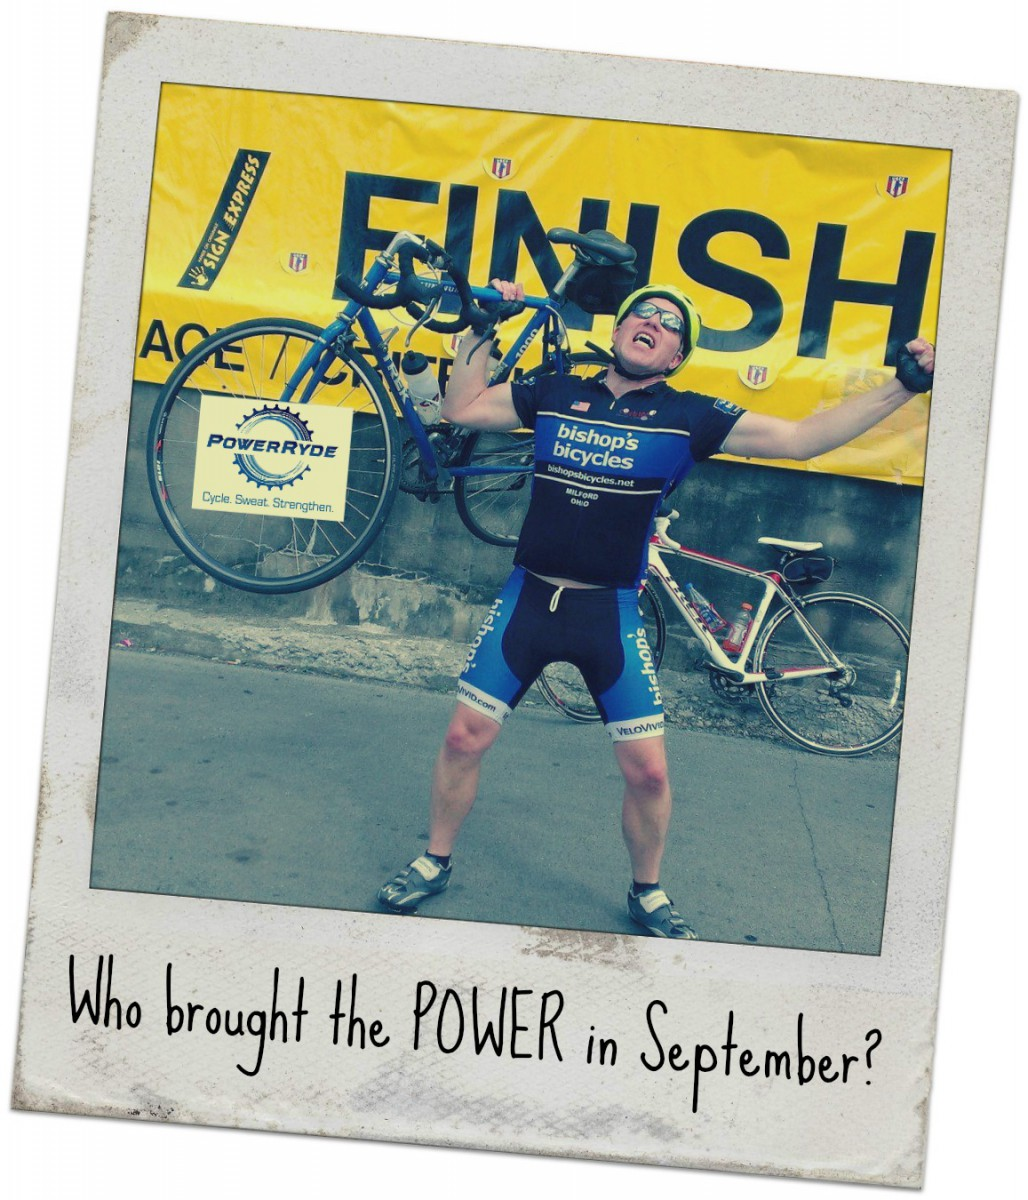 Who brought the POWER in September?